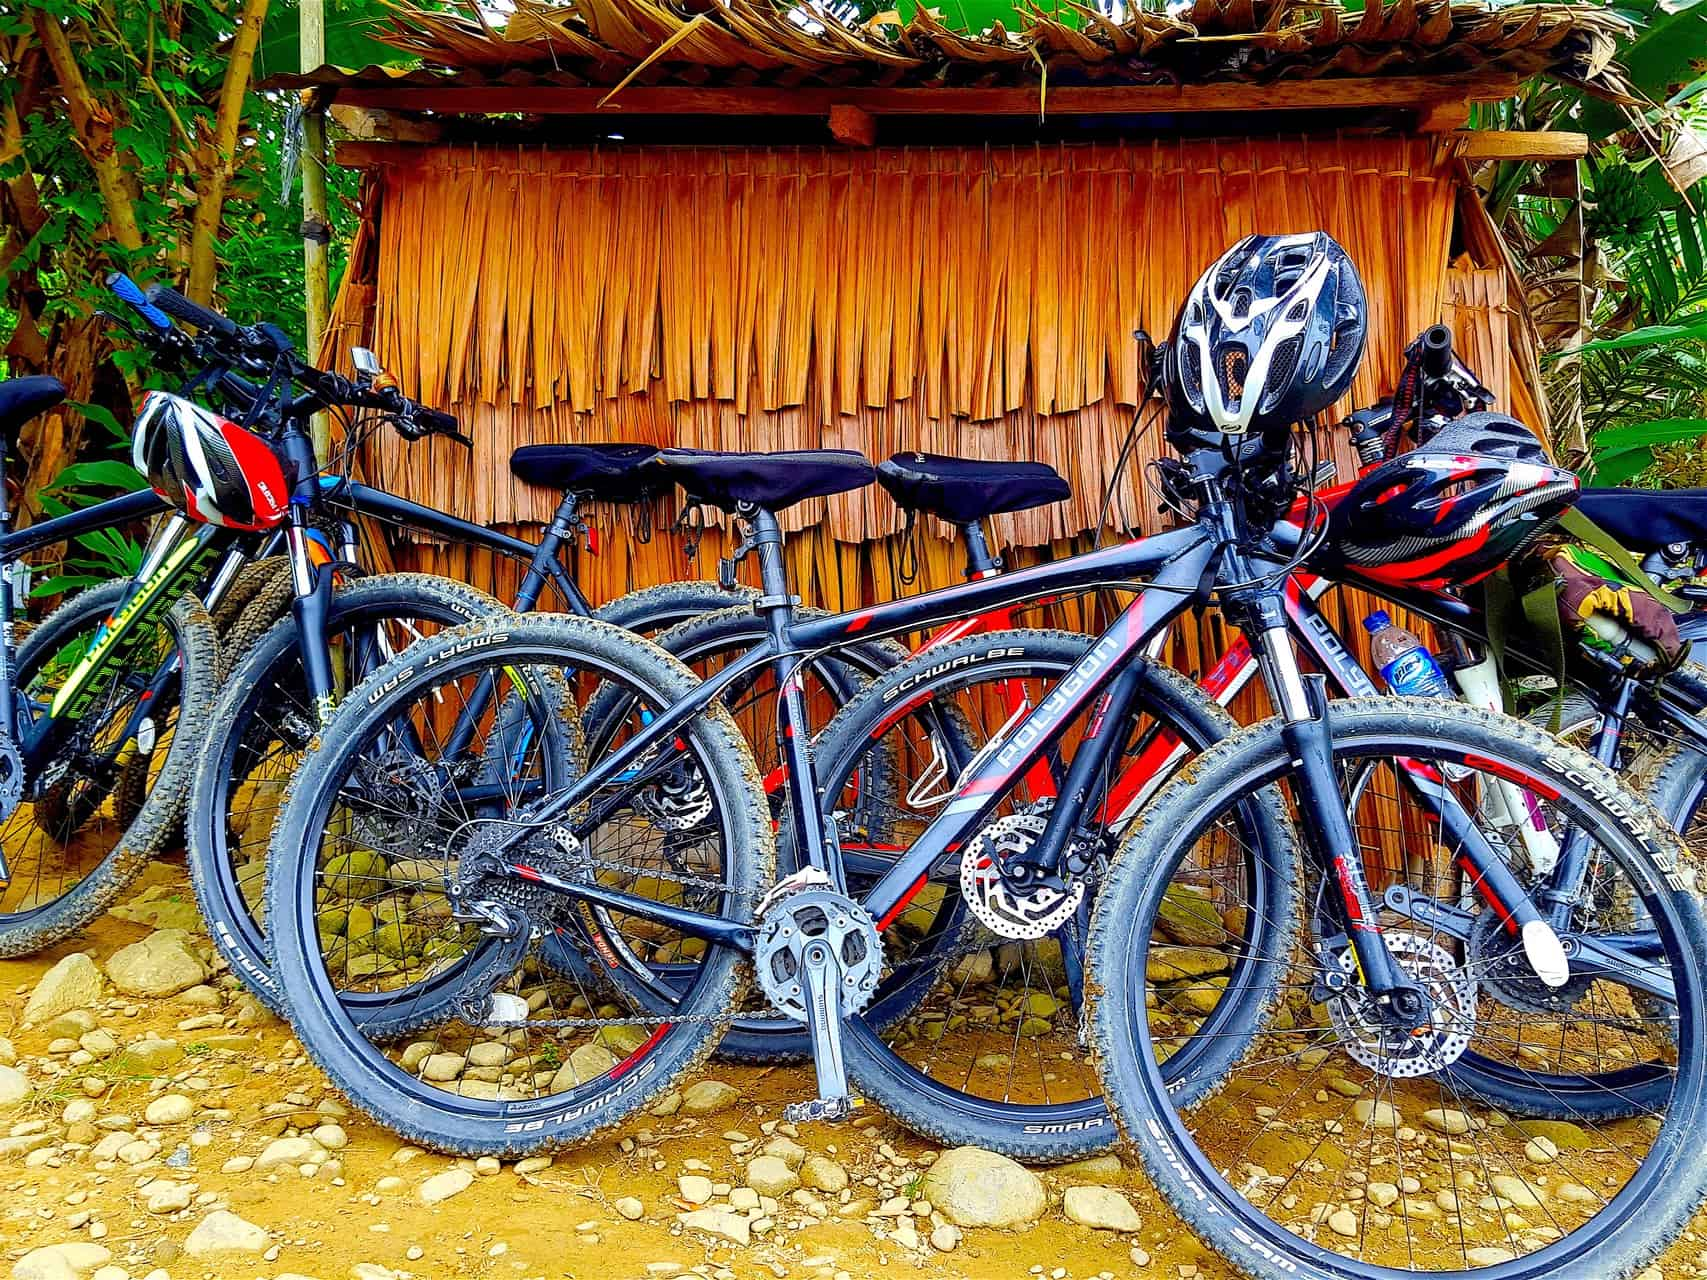 MOUNTAIN BIKE TRIP - VILLAGE LIFE - SUMATRA ECOTRAVEL BUKIT LAWANG